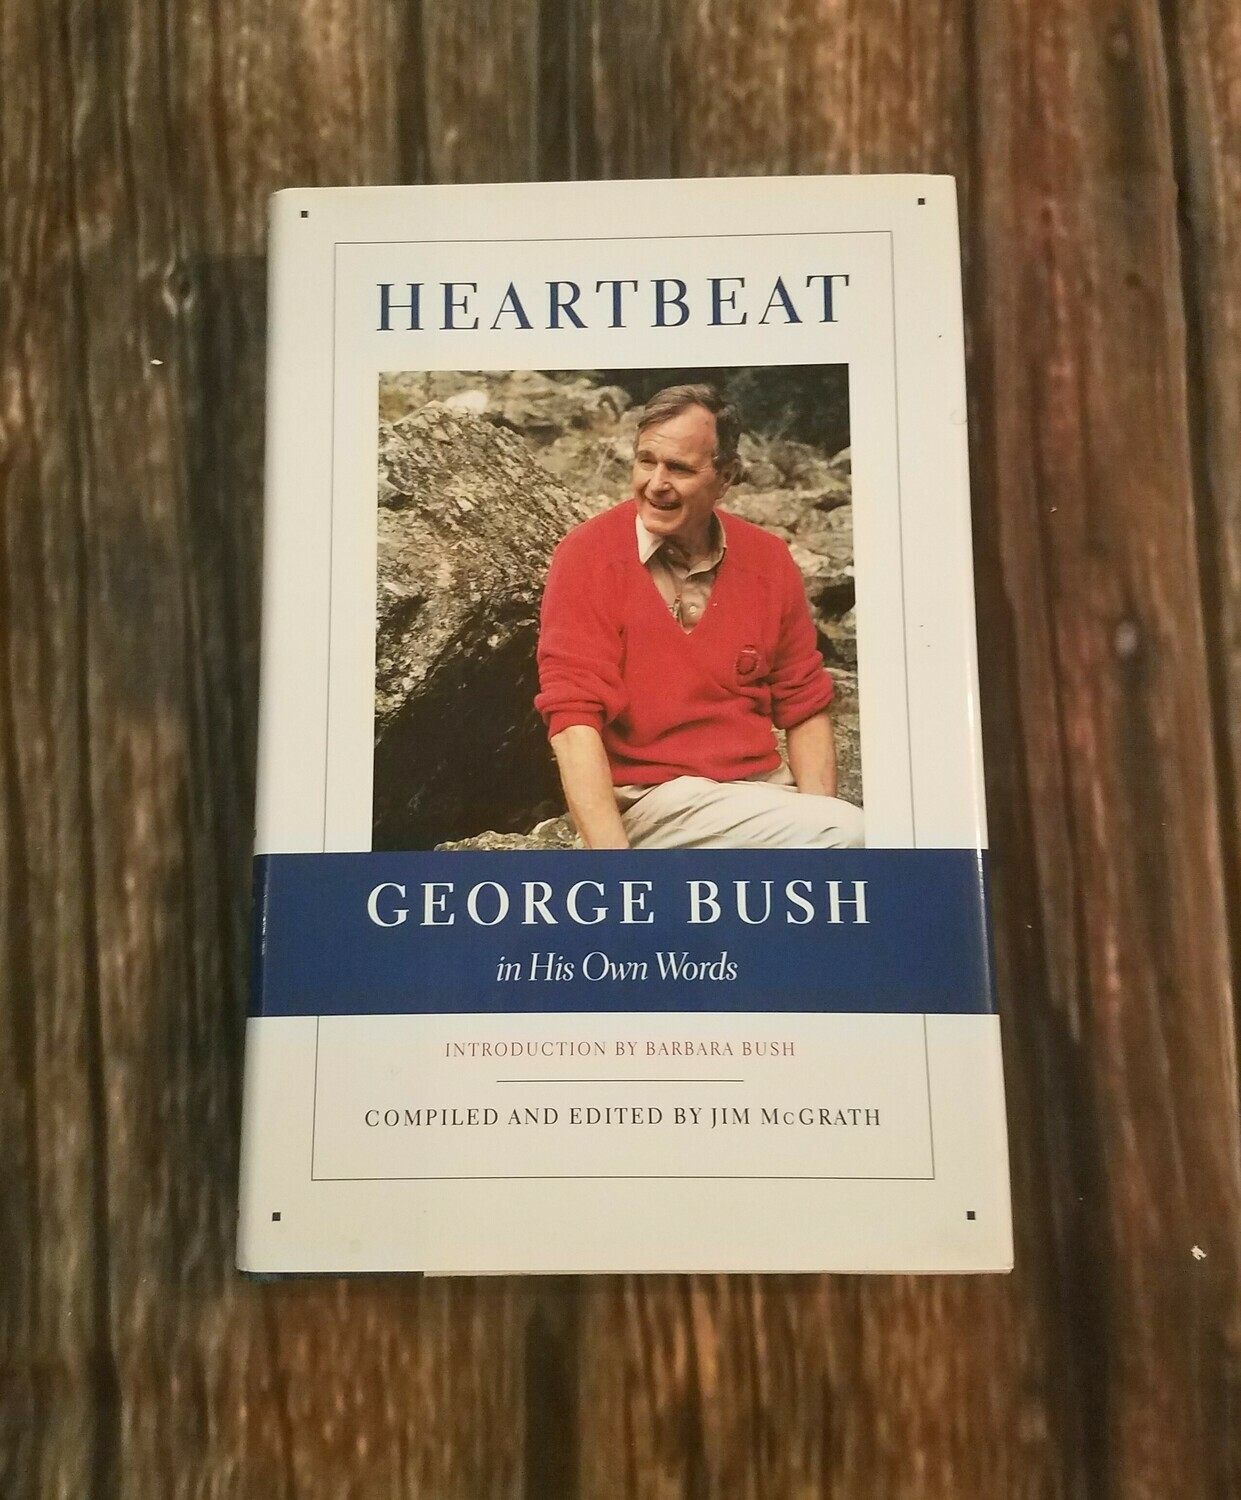 Heartbeat: George Bush in his own Words by Jim McGrath